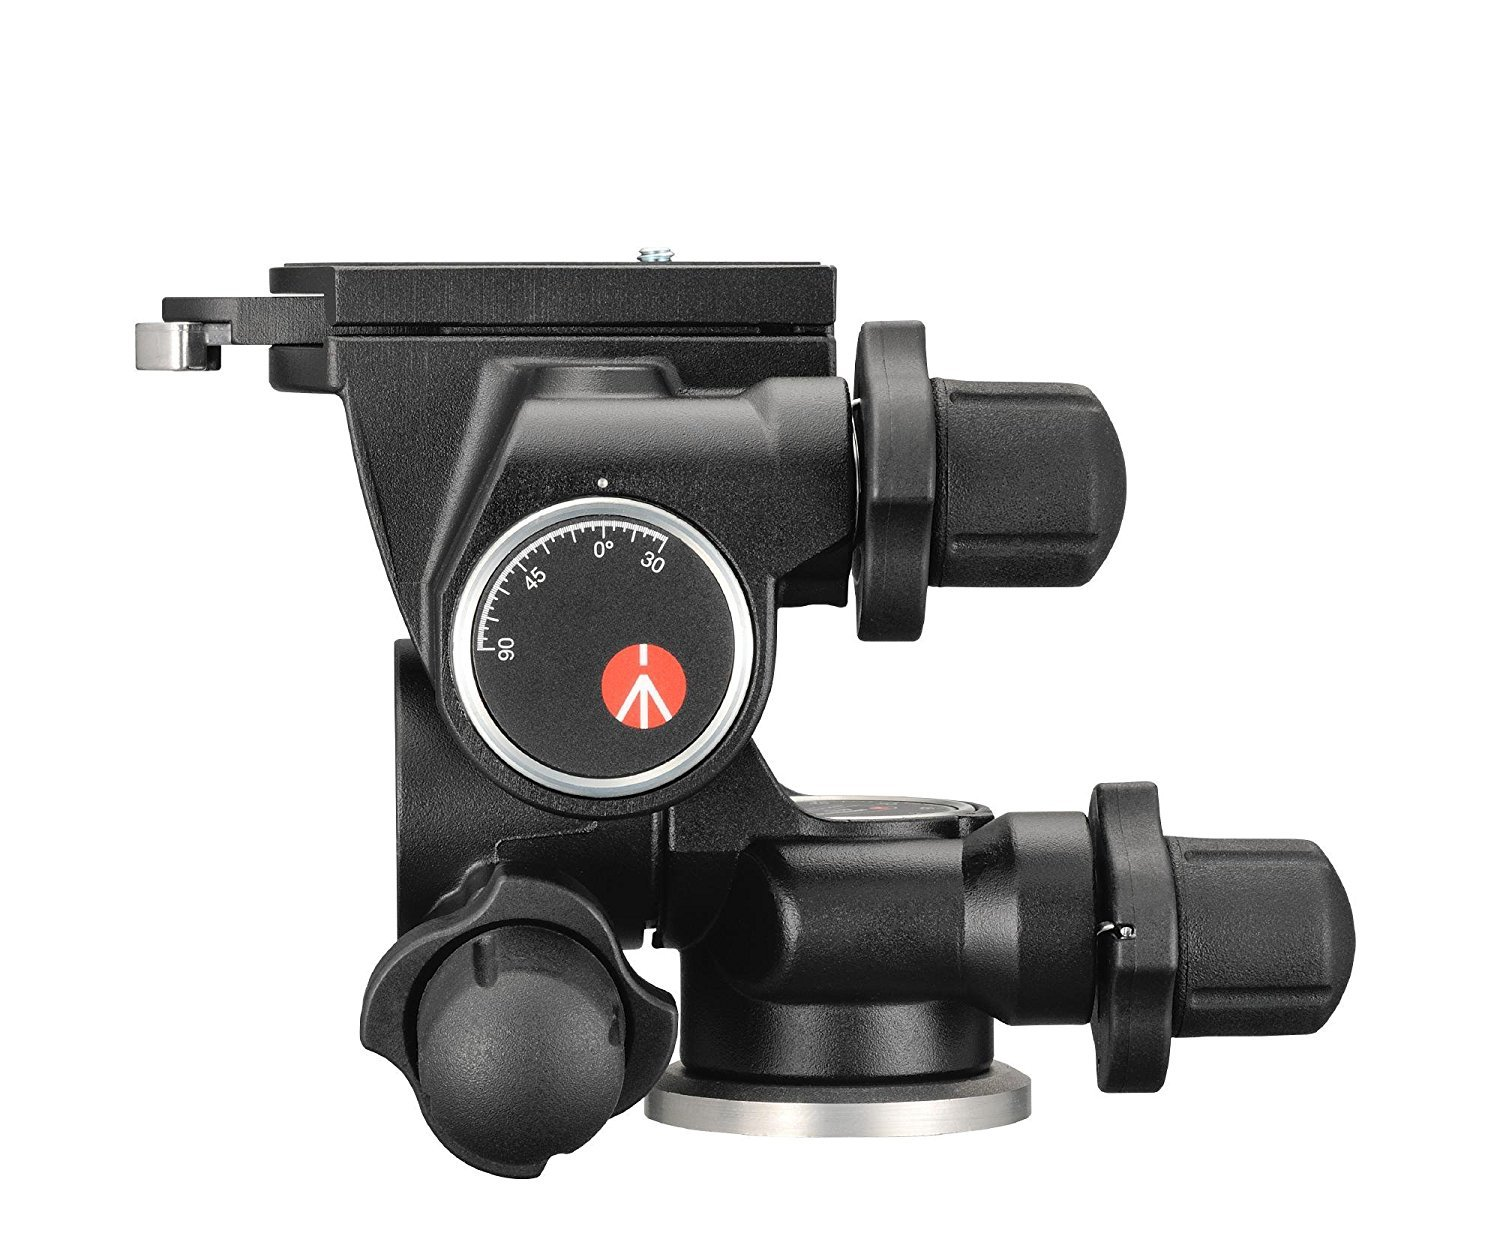 Manfrotto 410 Junior Geared Tripod Head with Quick Release and a Bonus Ivation Quick Release Plate by Manfrotto (Image #2)